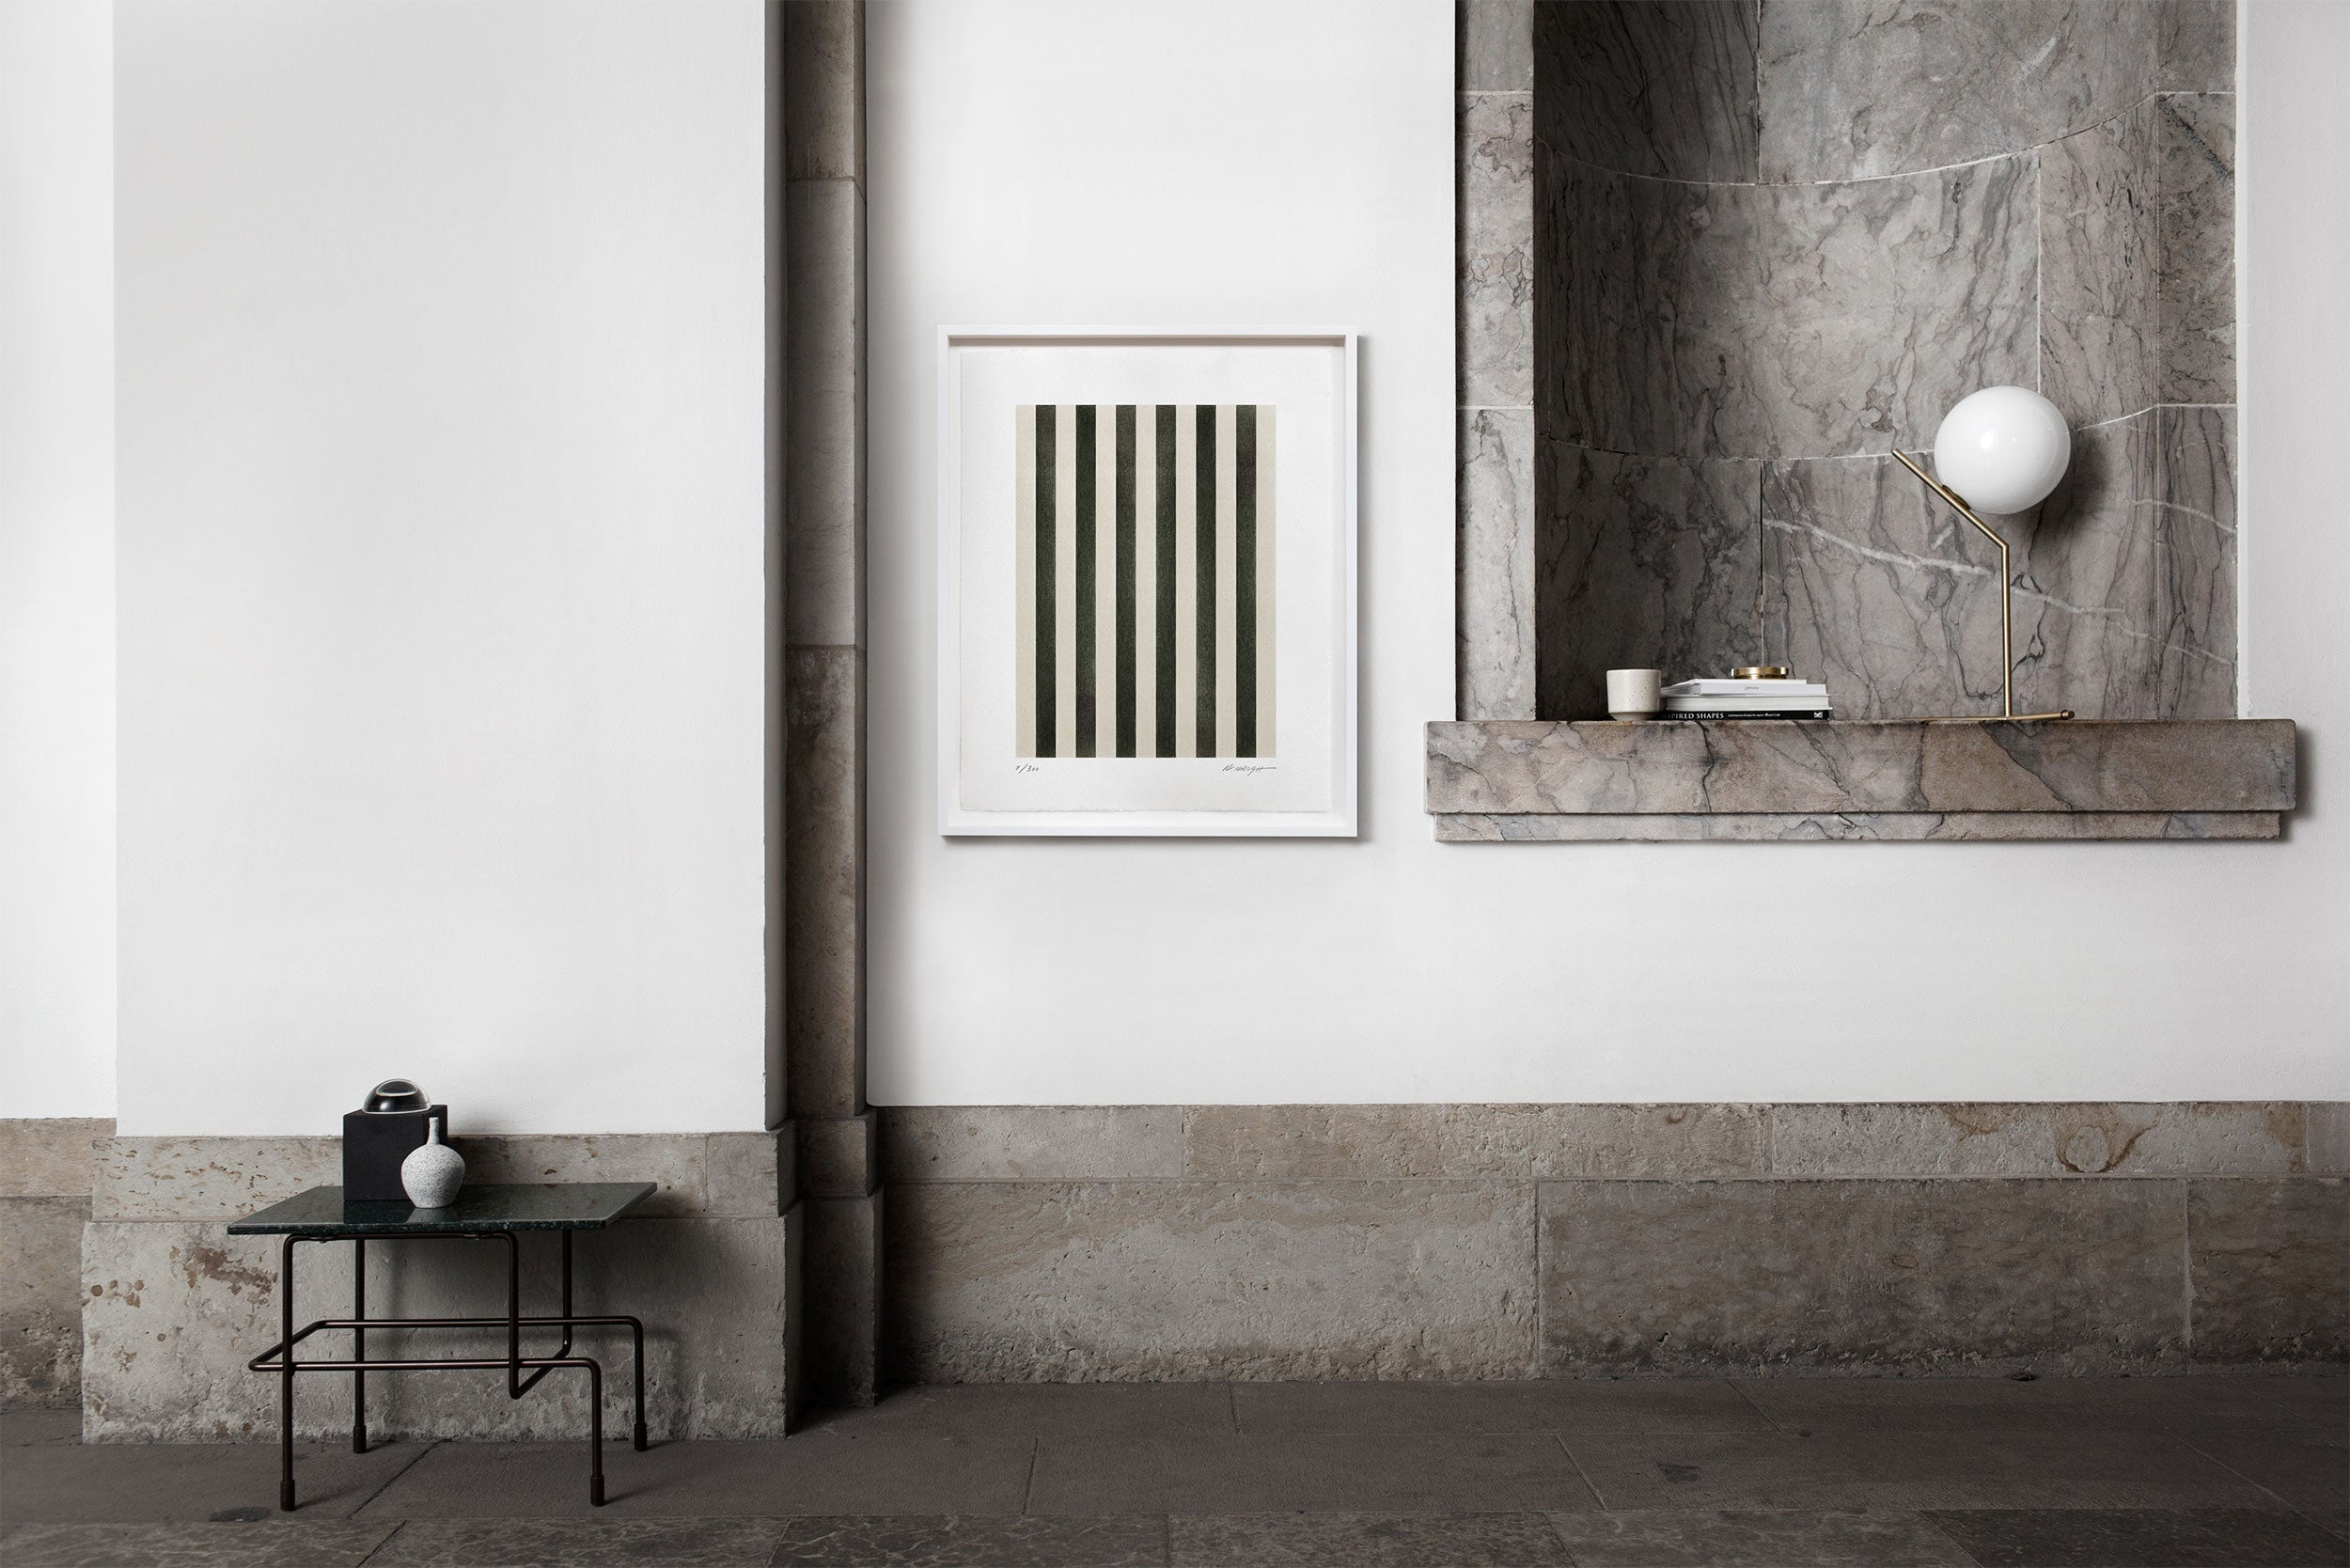 Image of Blinds No. 5